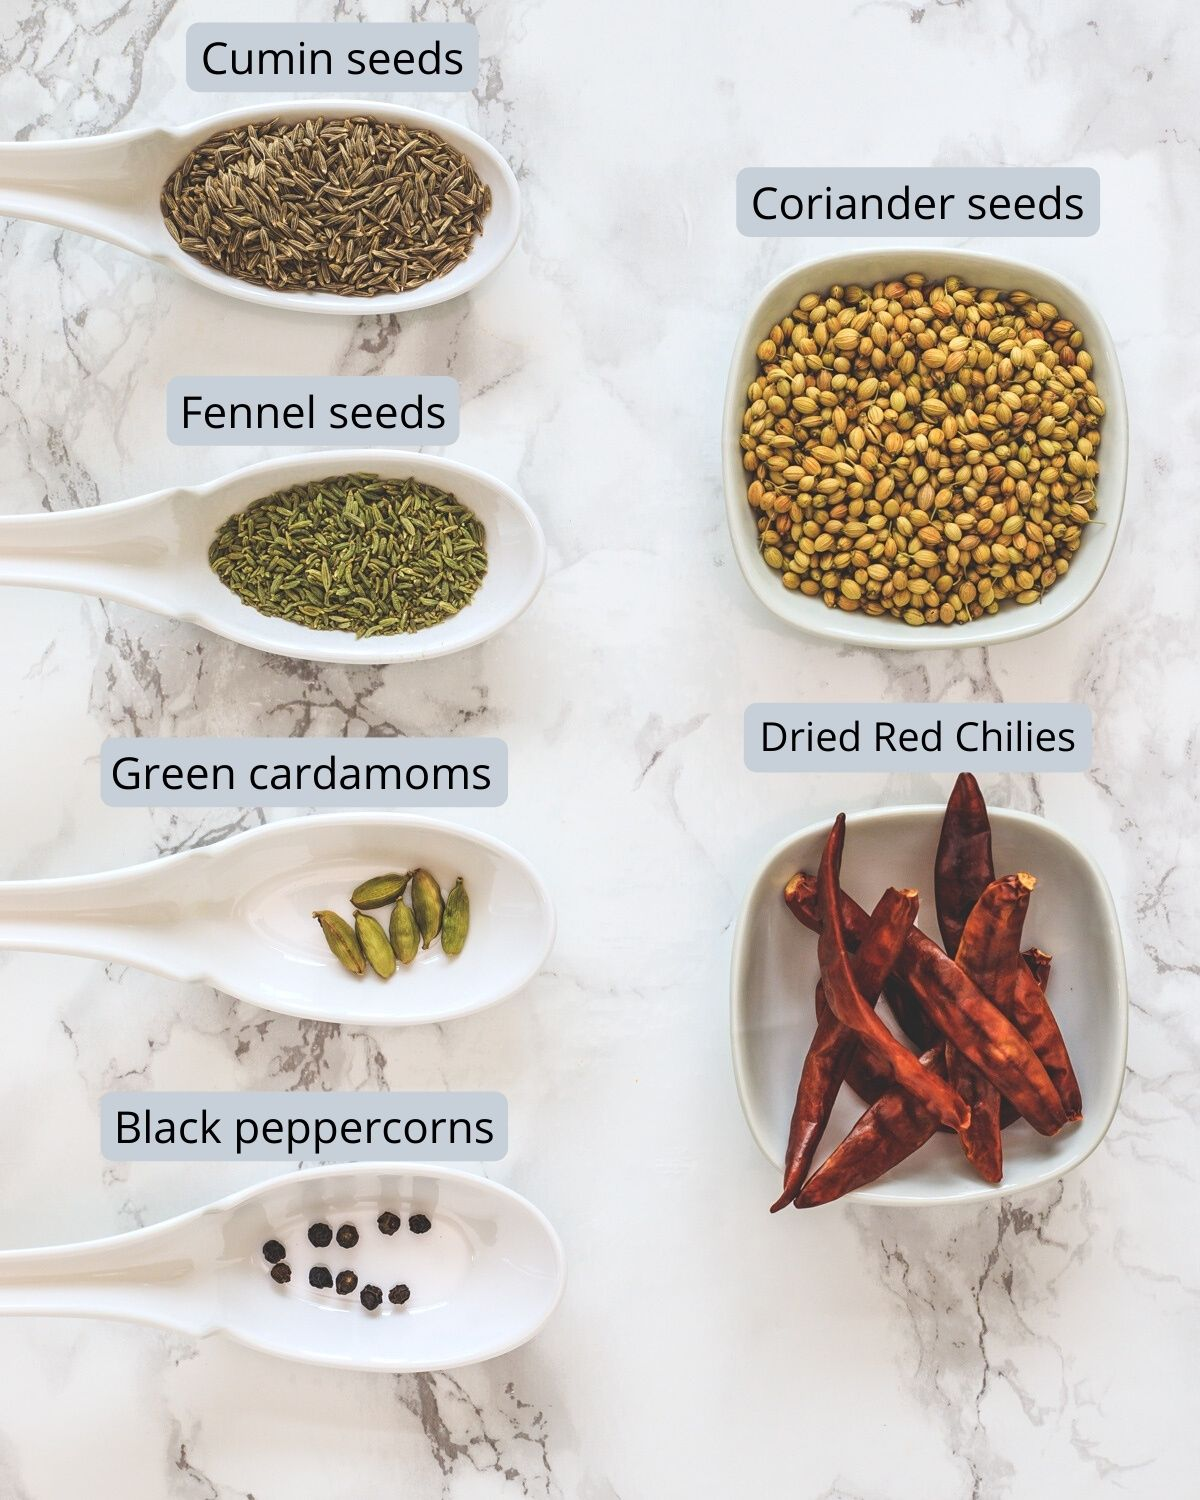 Ingredients used in kadai masala includes coriander seeds, dried chilies, cumin, fennel seeds, peppercorns, cardamoms.